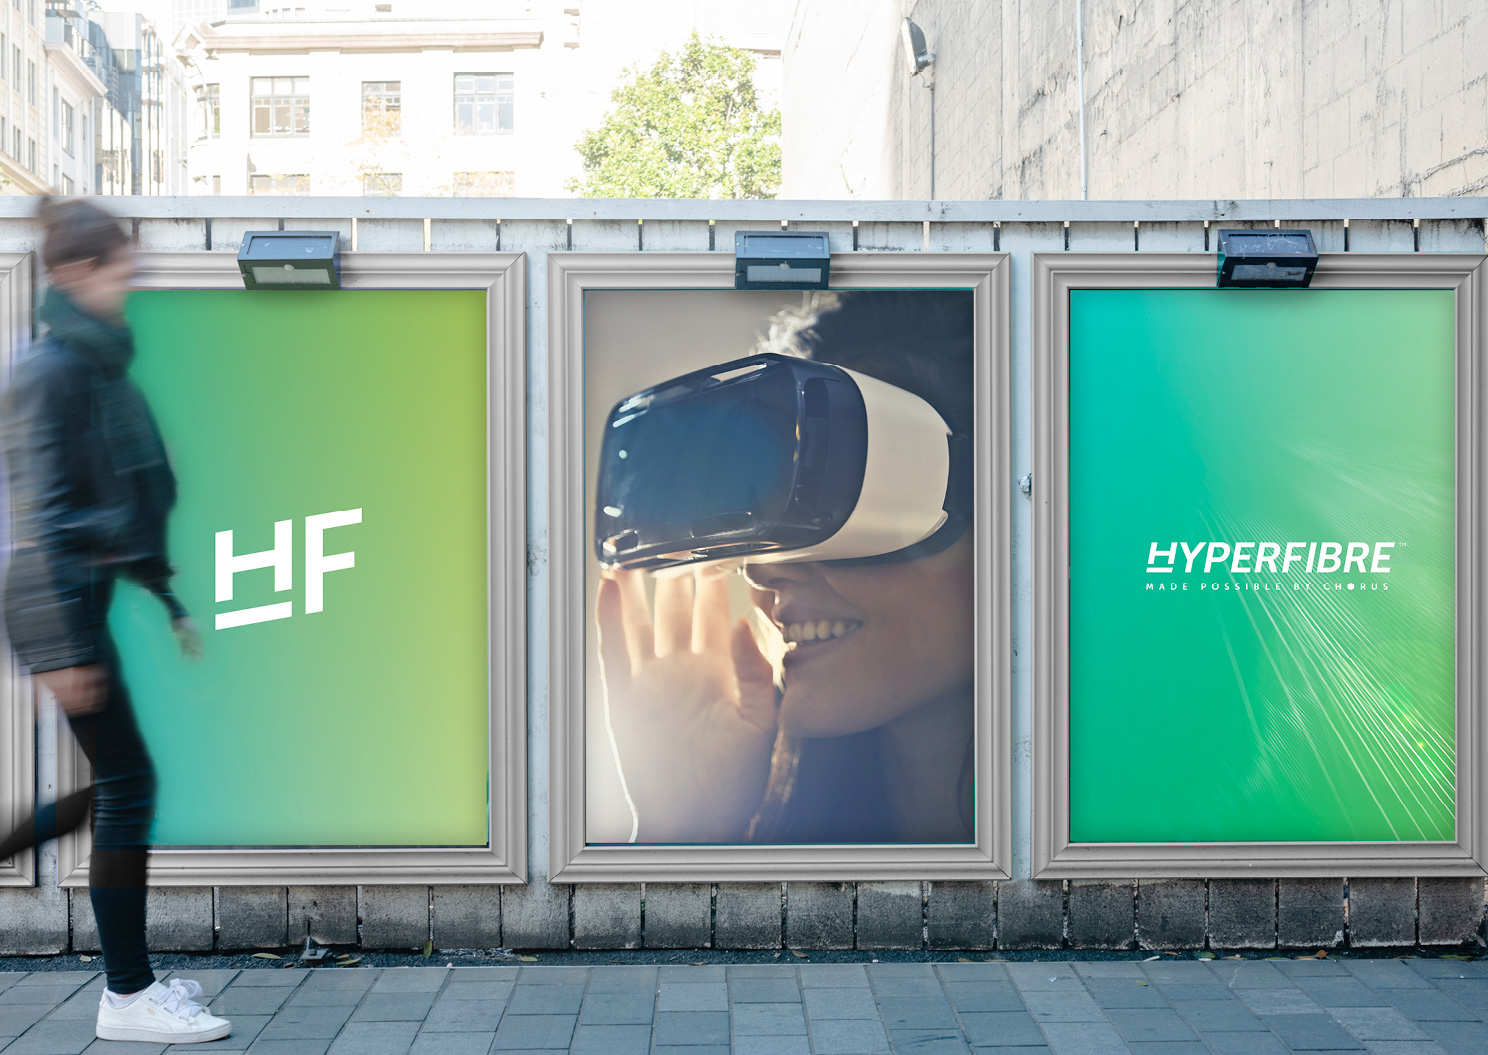 Hyperfibre street posters